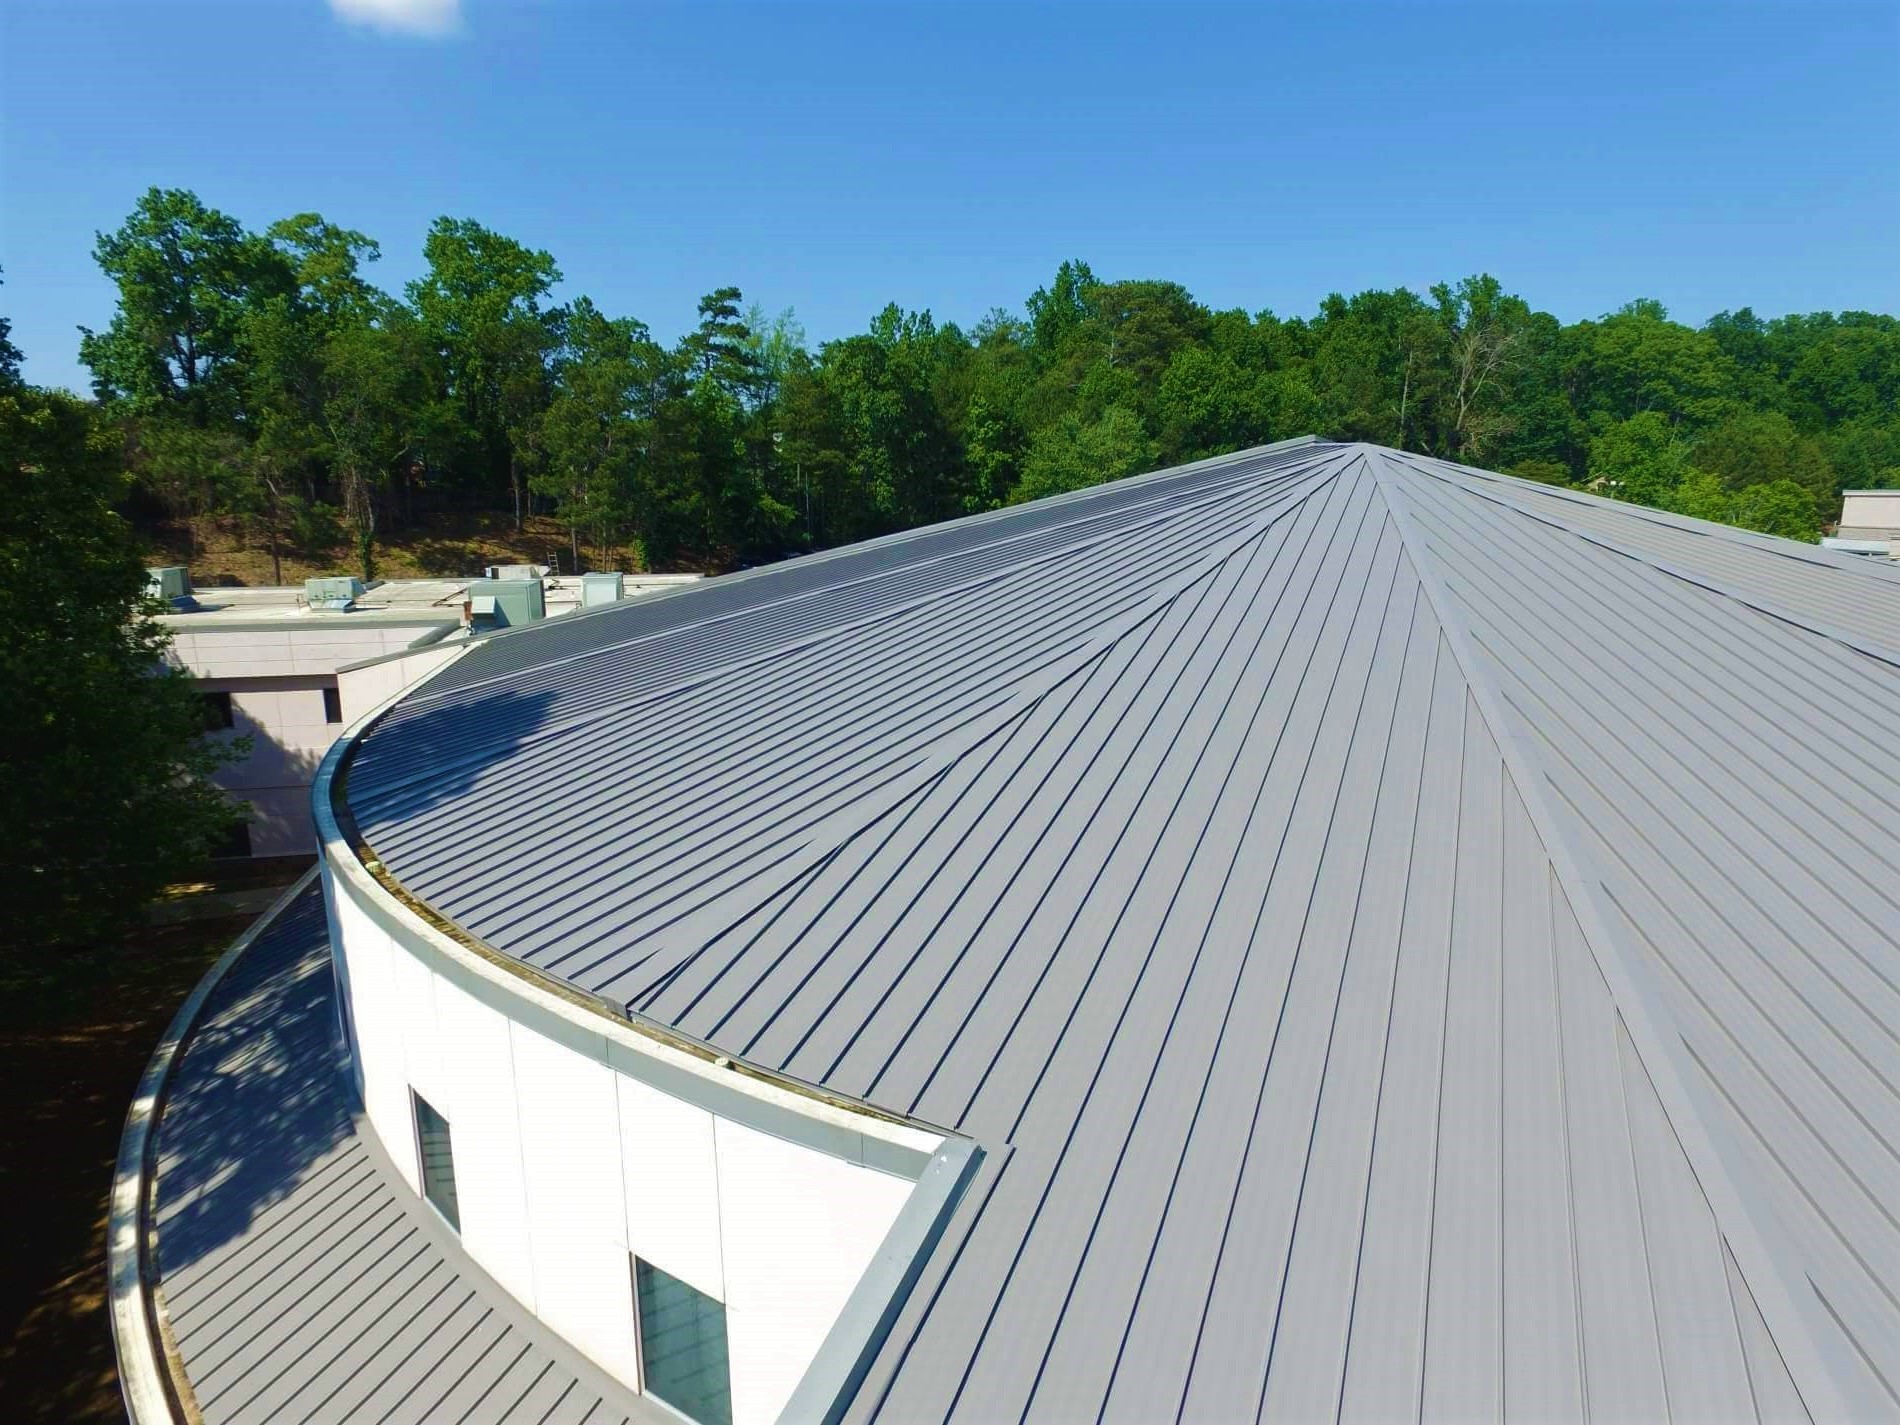 We offer roofing services for every commercial and residential roofing need! Whether you're looking for PVC roofing, TPO membranes or metal roofs we are here for you. Our unbeatable roof services are known for its quality and perfection! Call us now (903) 225-8383.